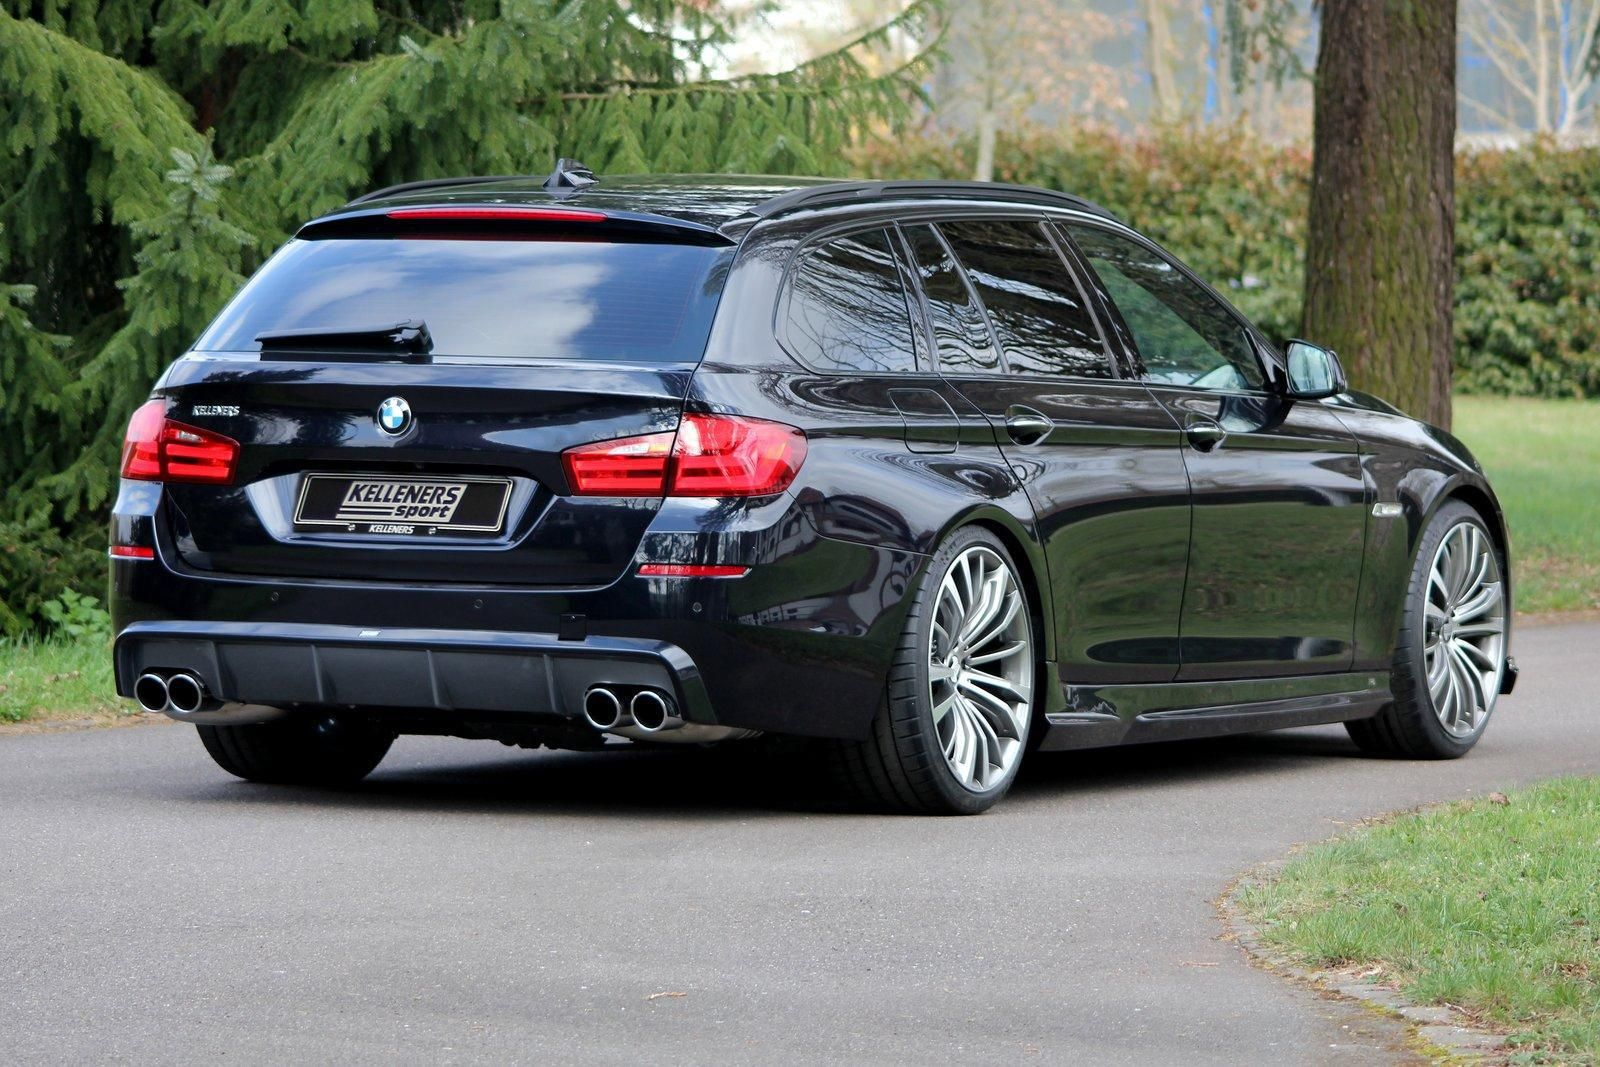 Bmw 5 Series Touring F11 Tuning By Kelleners Sport A New Tuning